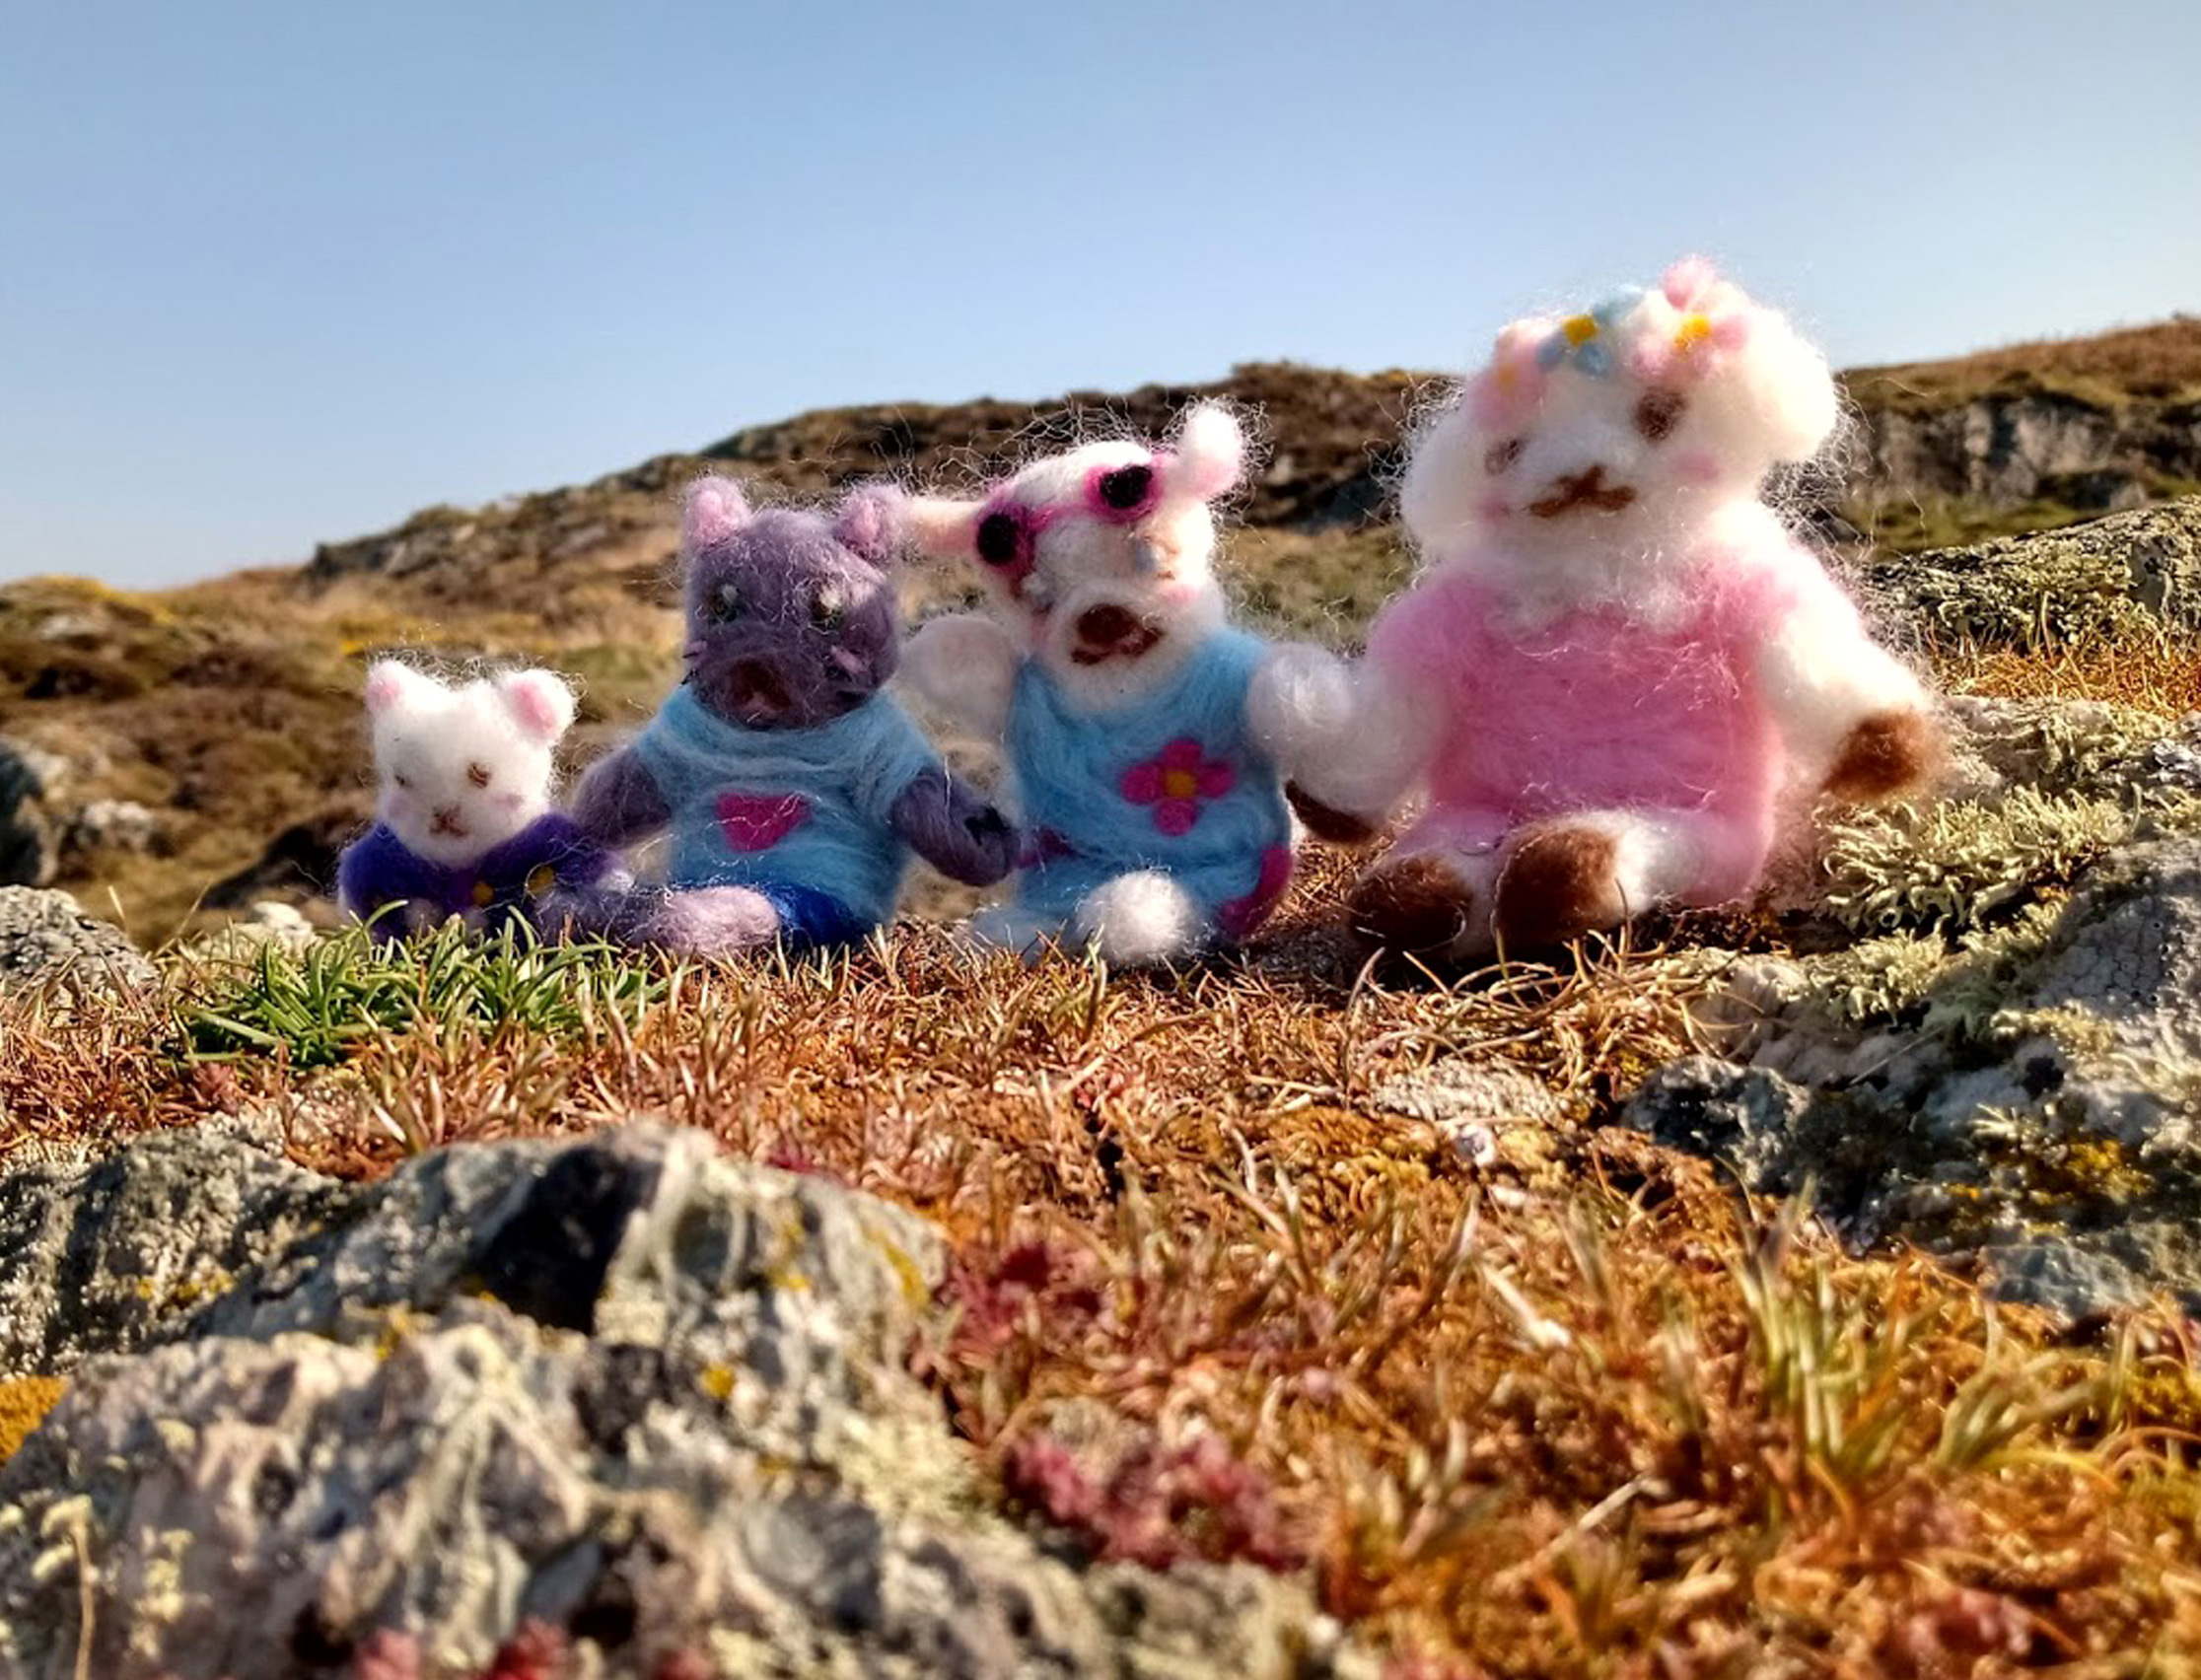 photograph of felt wool animal dolls on a hill